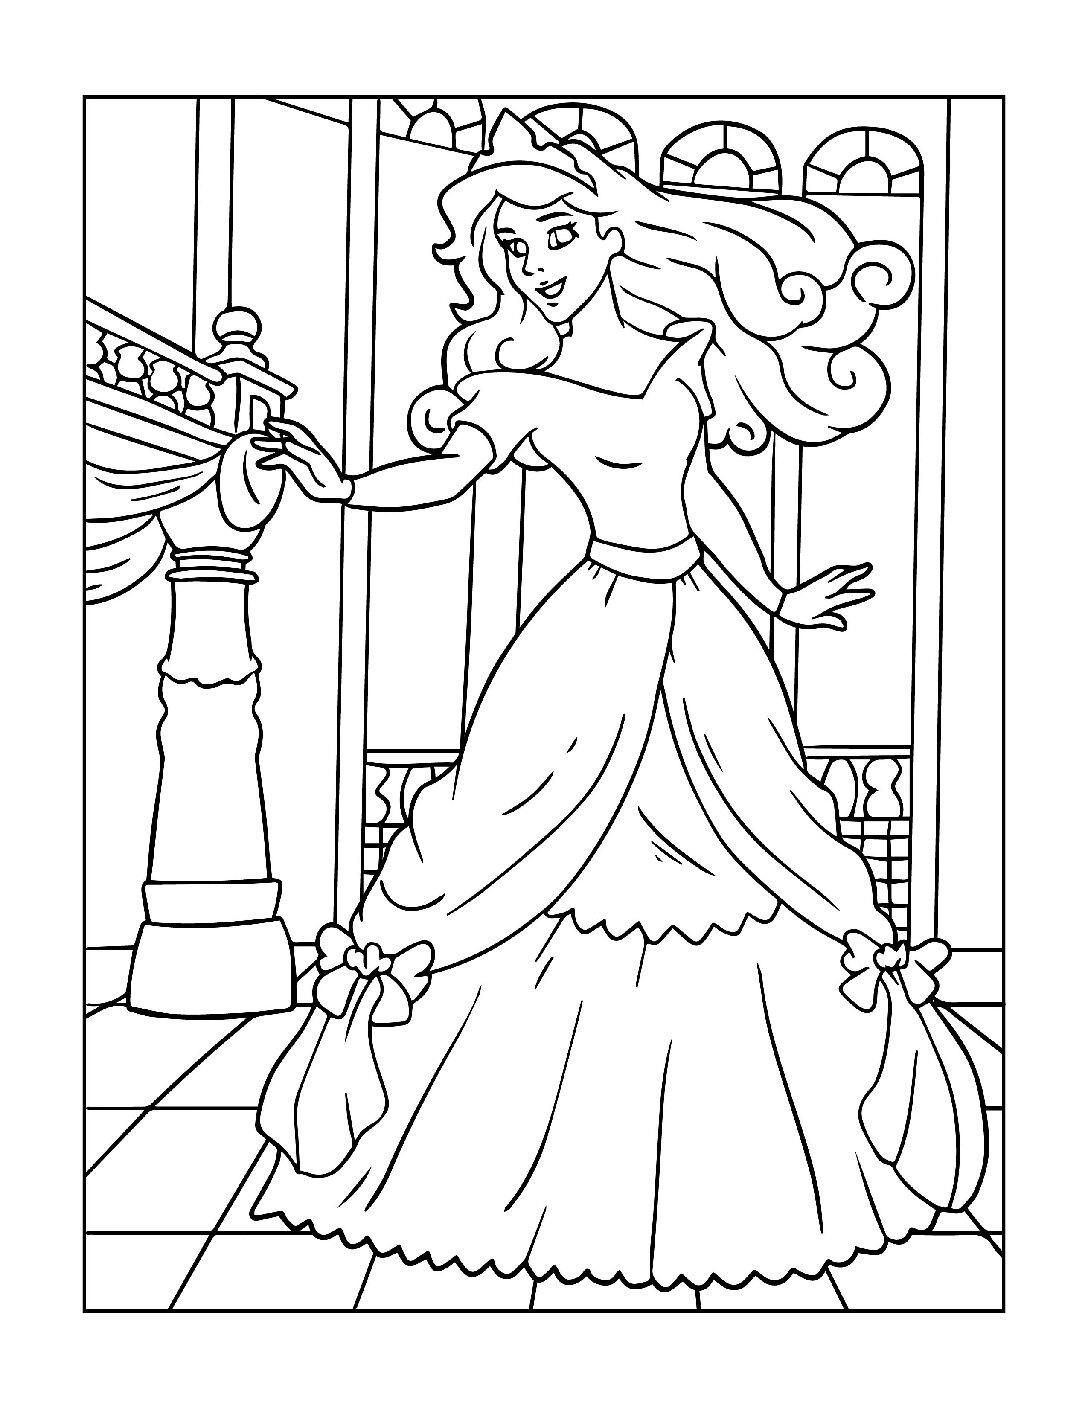 Coloring-Pages-Princess-7-01-pdf Free Printable Princesses Colouring Pages